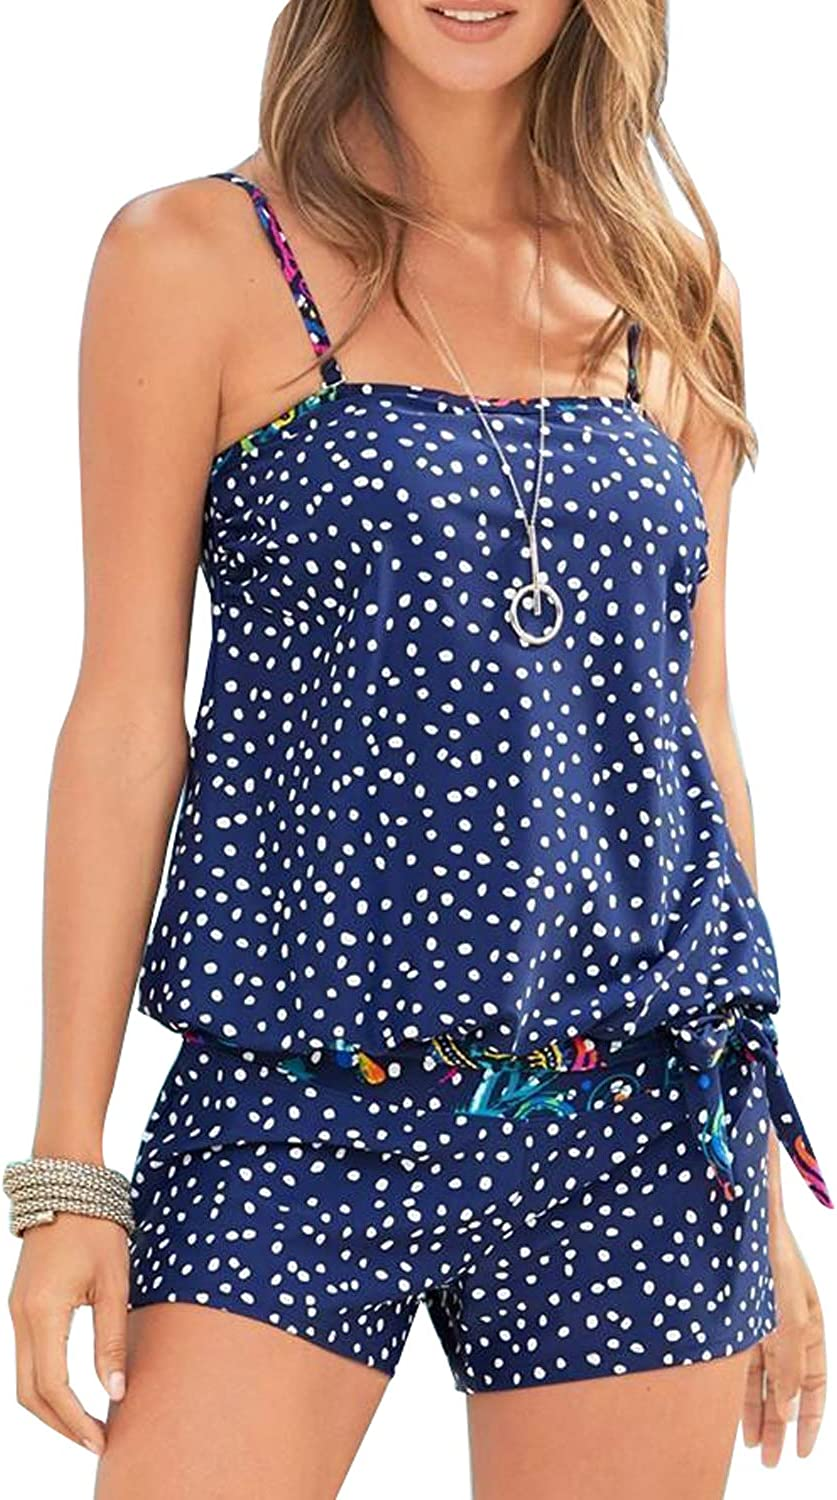 GLUDEAR Womens Dotted Floral Printed Strappy T-Back Push up Tankini Top with Shorts